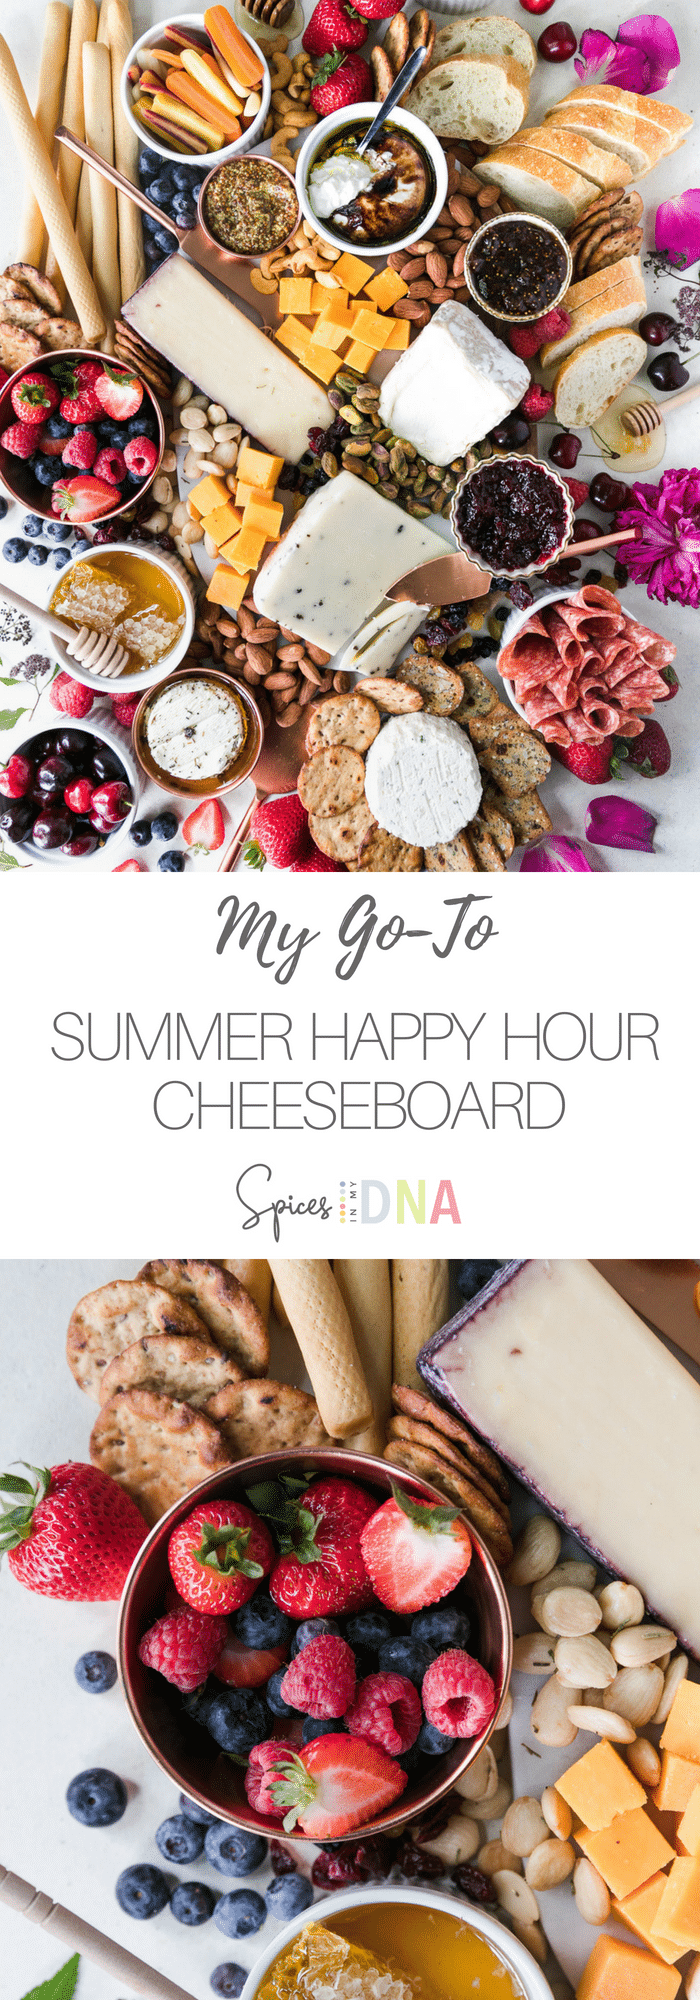 My Go-To Summer Happy Hour Cheeseboard is filled with my favorite cheeses, salami, assorted nuts, crackers, dried fruit, preserves, jams, and honey. I also added some fresh summer berries and cherries because they're in season, and they pair beautifully with all of the salty snacks. All we need is a glass of wine and we're set! #cheeseboard #appetizer #entertaining